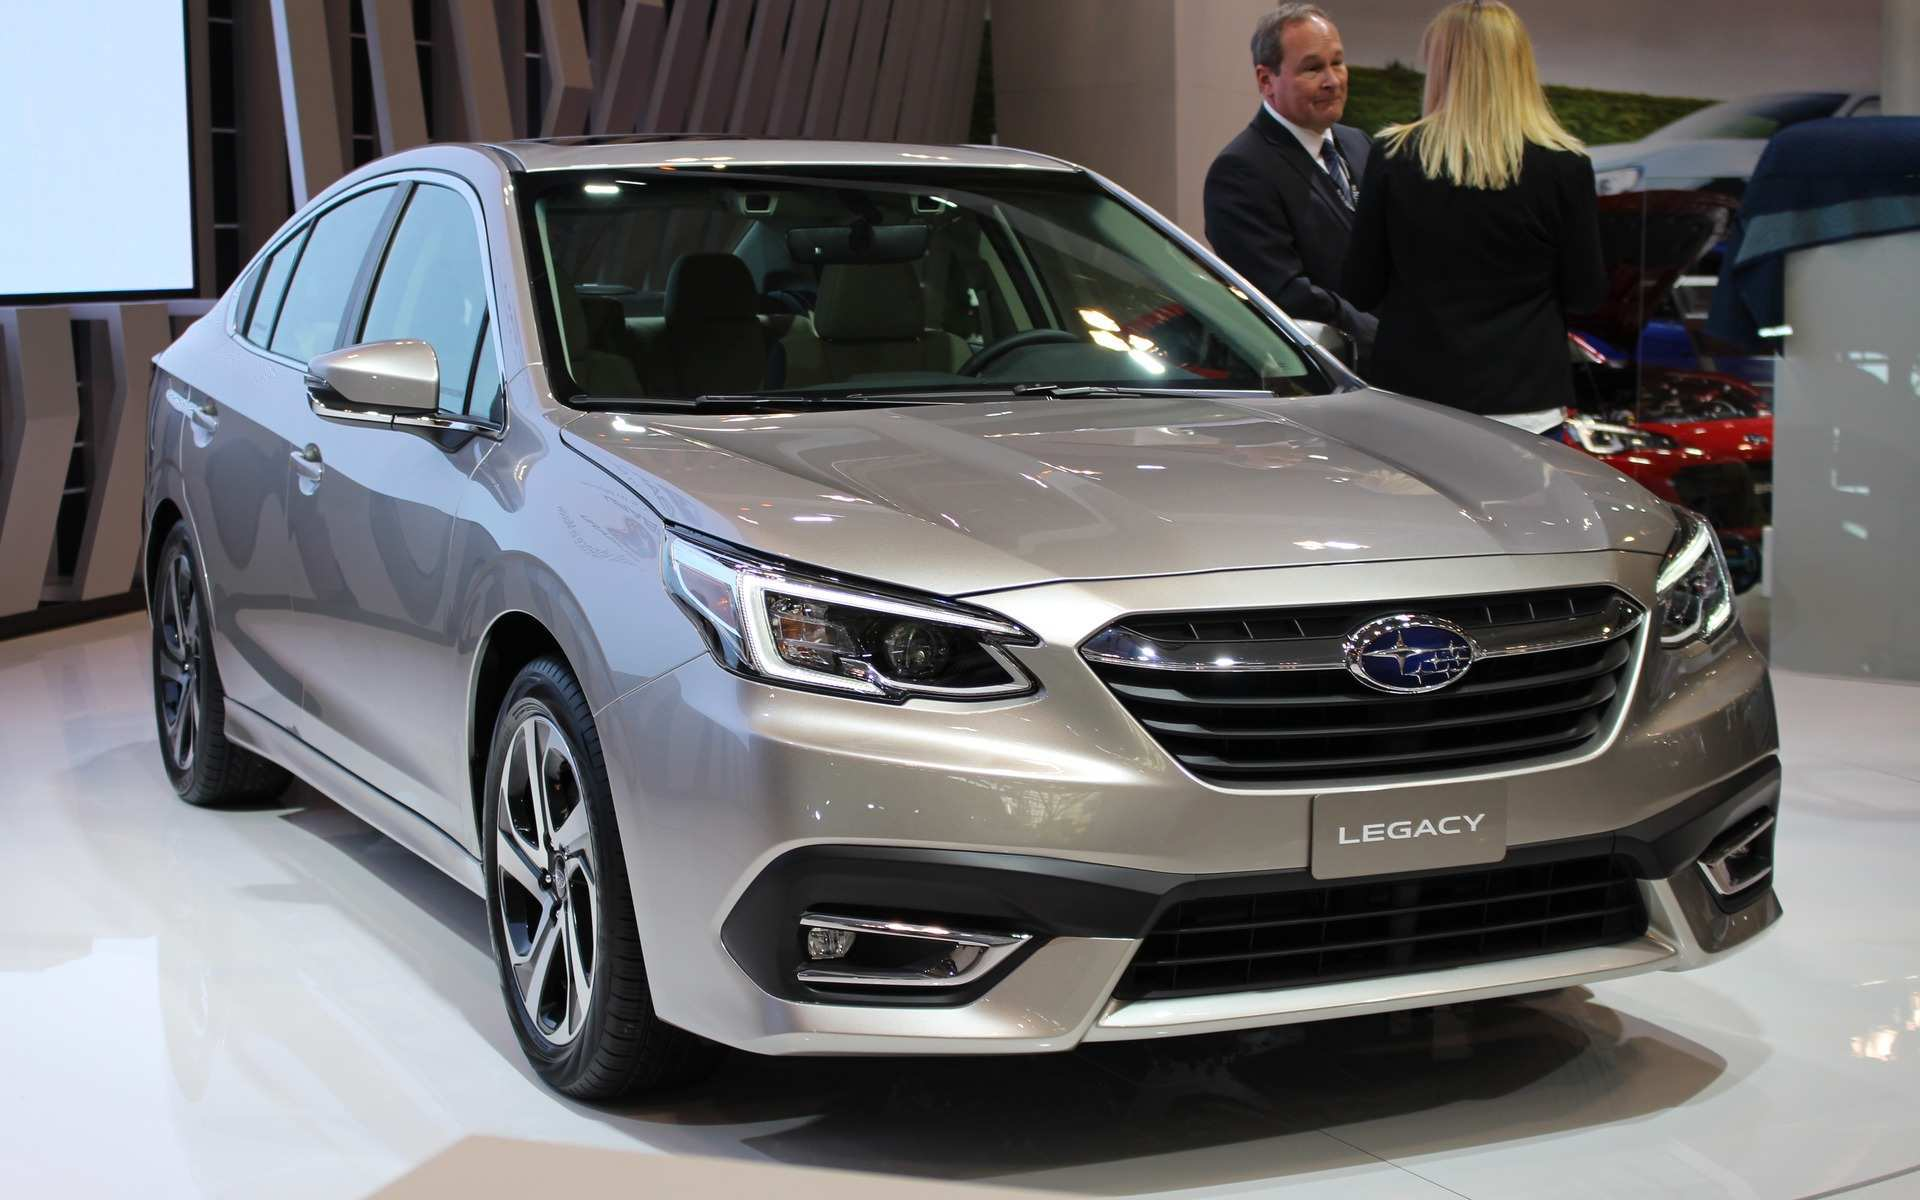 55 New Subaru Legacy 2020 Japan Rumors with Subaru Legacy 2020 Japan